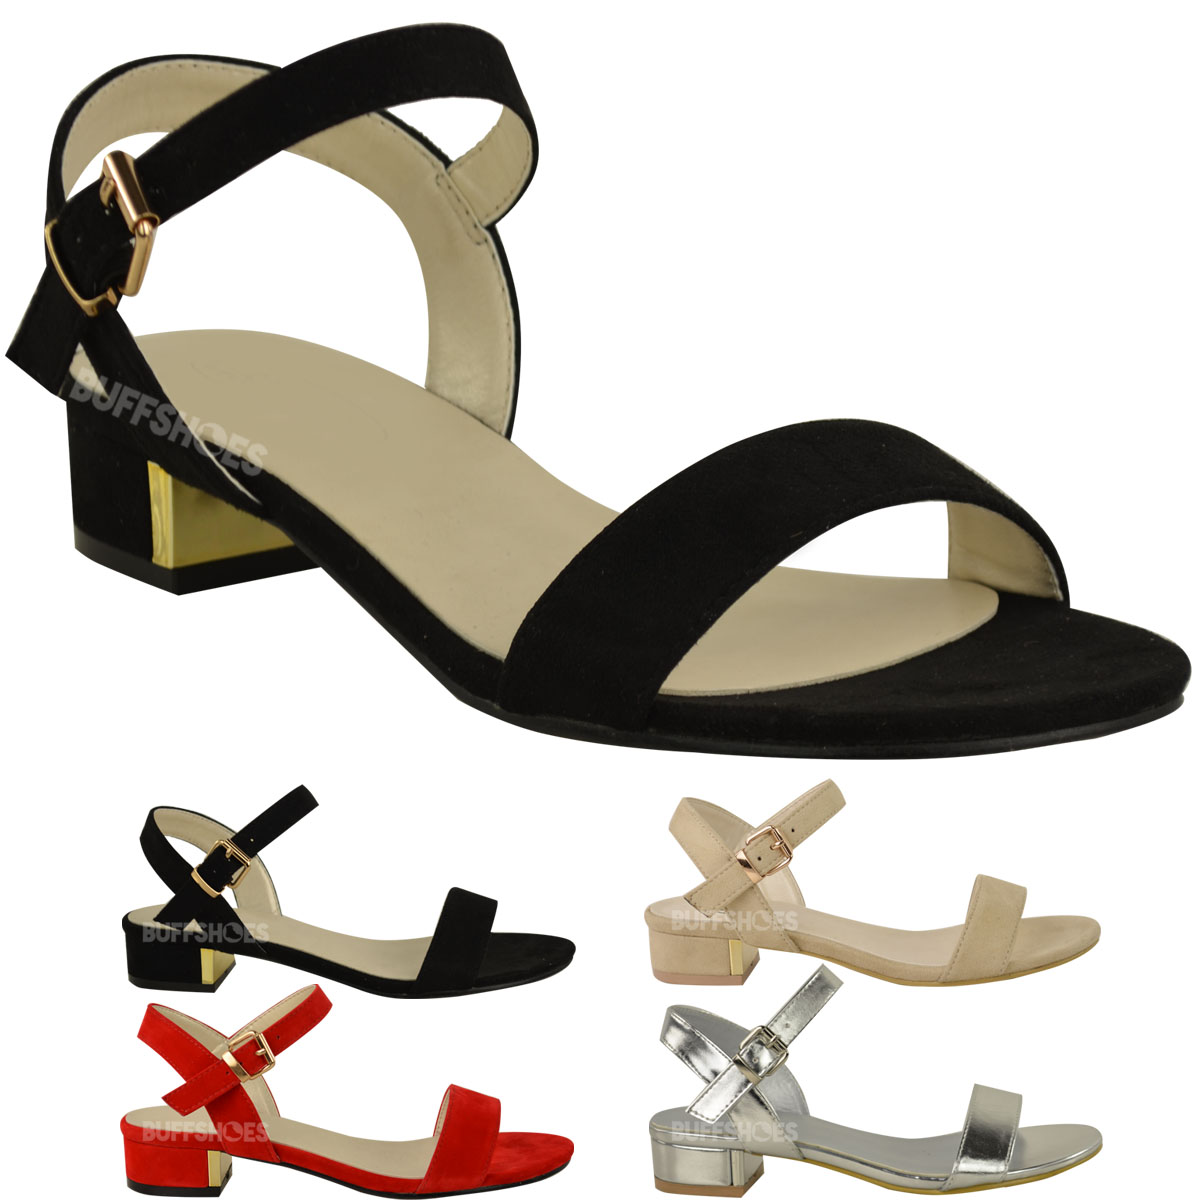 2fcce836f Details about Womens Ladies Low Flat Block Heel Open Toe Summer Sandals  Black Buckle New Size